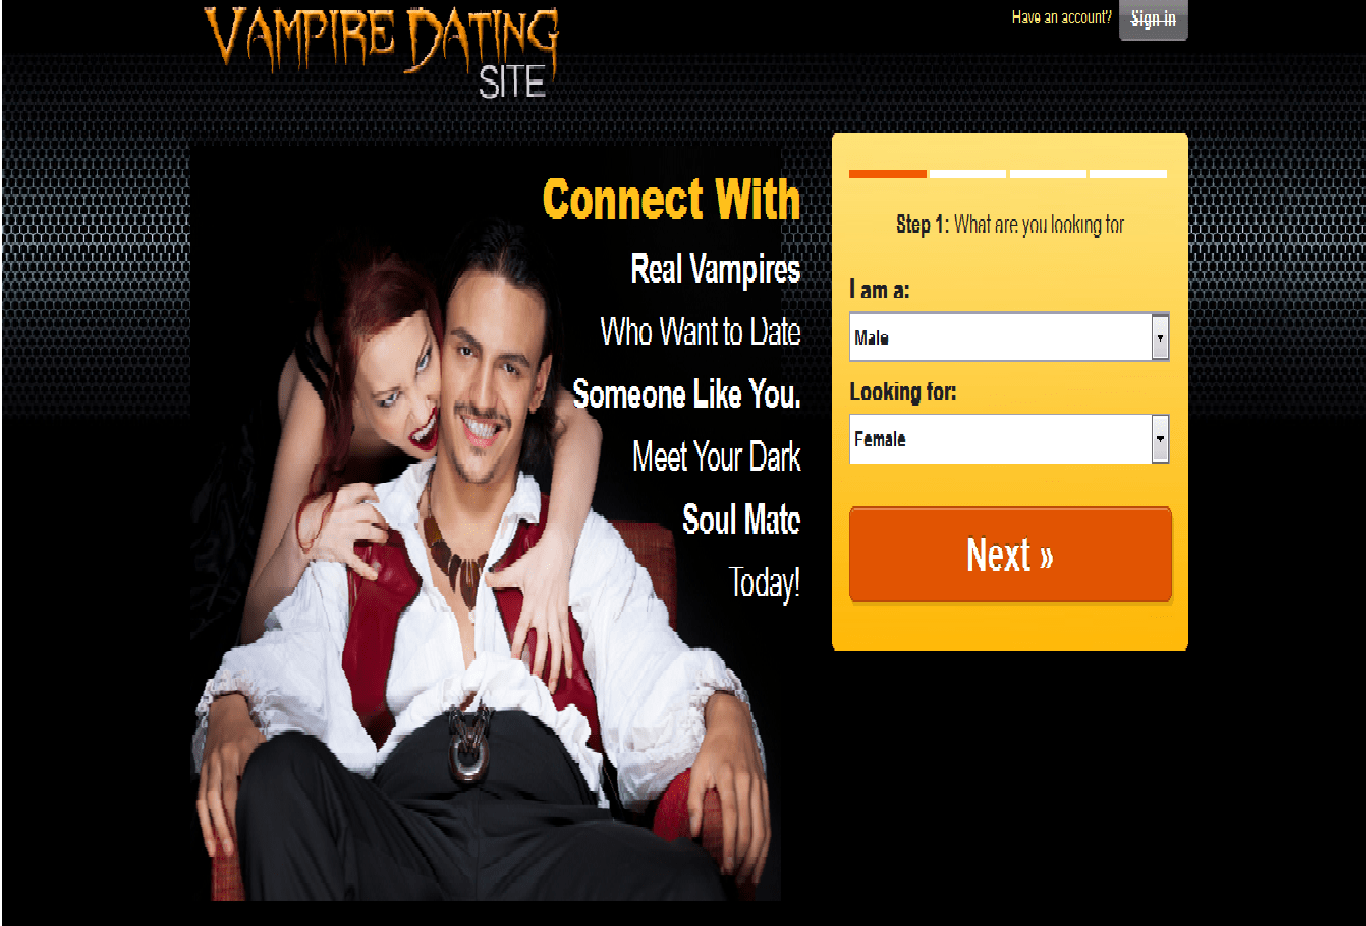 How to write an interesting dating site profile image 29